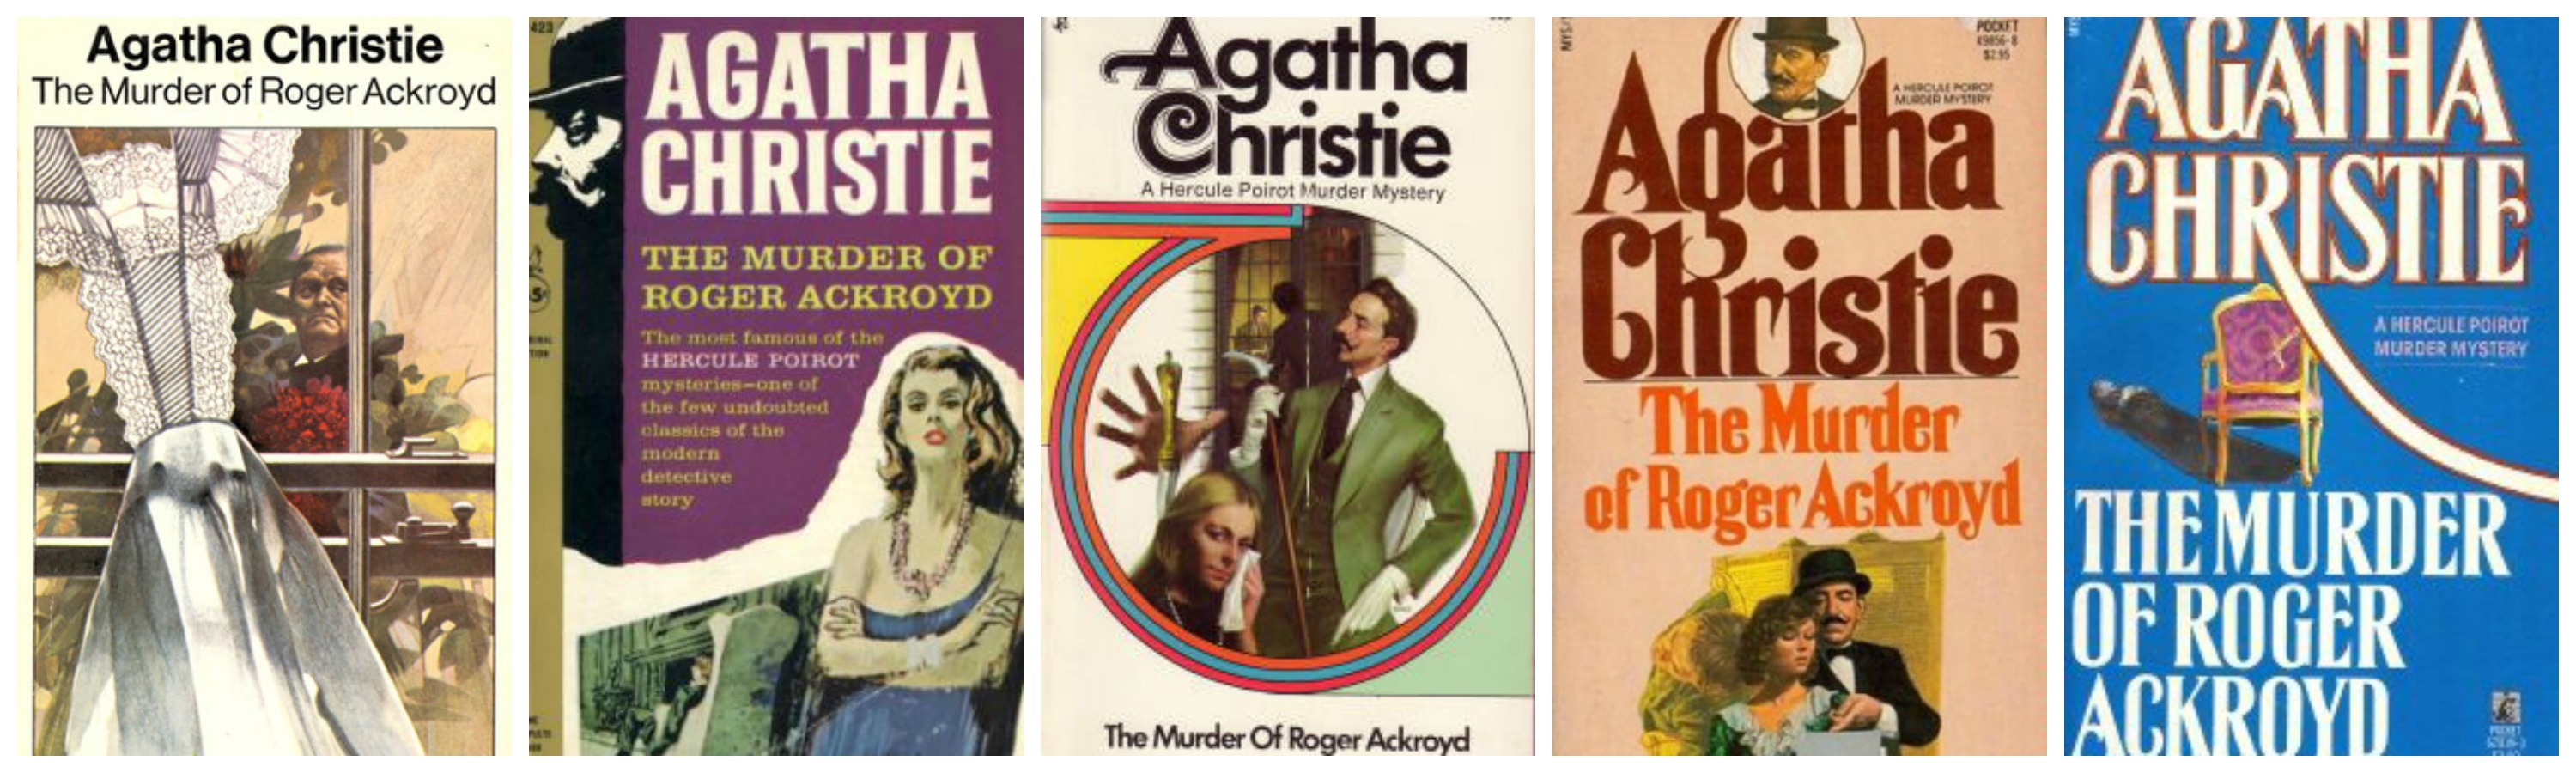 facts and faith in the book the murder of roger acroyd by agatha christie Christie's first major recognition came with the murder of roger ackroyd (1926), which was followed by some 75 novels that usually made best-seller lists and were serialized in popular magazines in england and the united states.